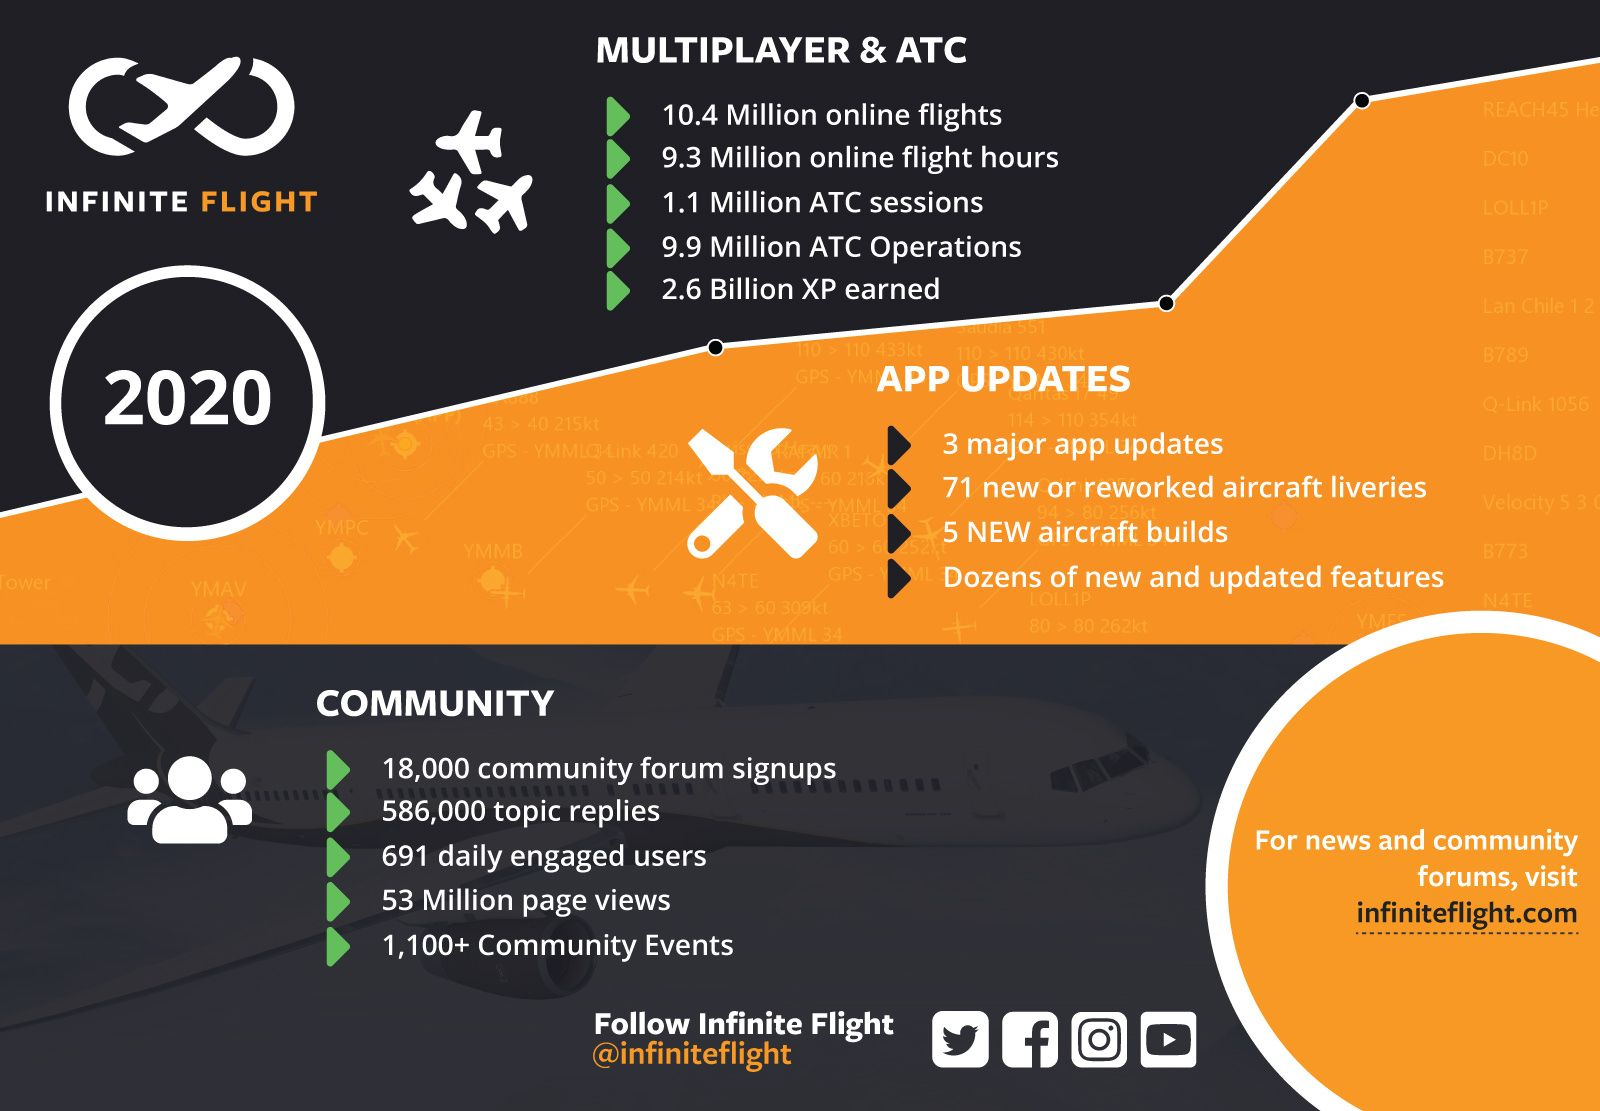 Infographic showing Infinite Flight statistics for 2020